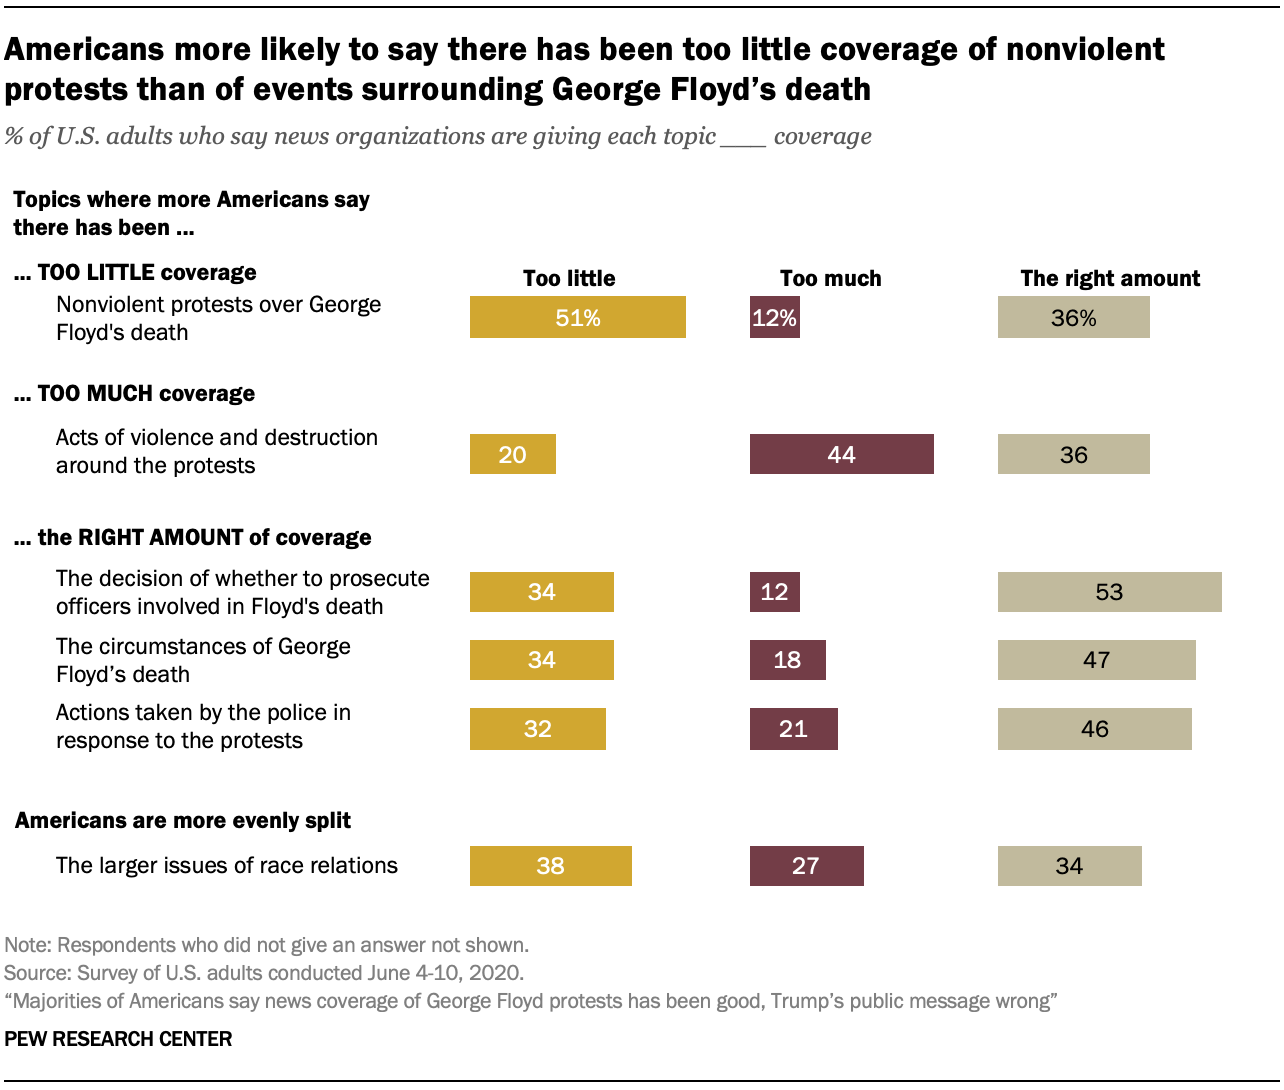 Americans more likely to say there has been too little coverage of nonviolent protests than of events surrounding George Floyd's death